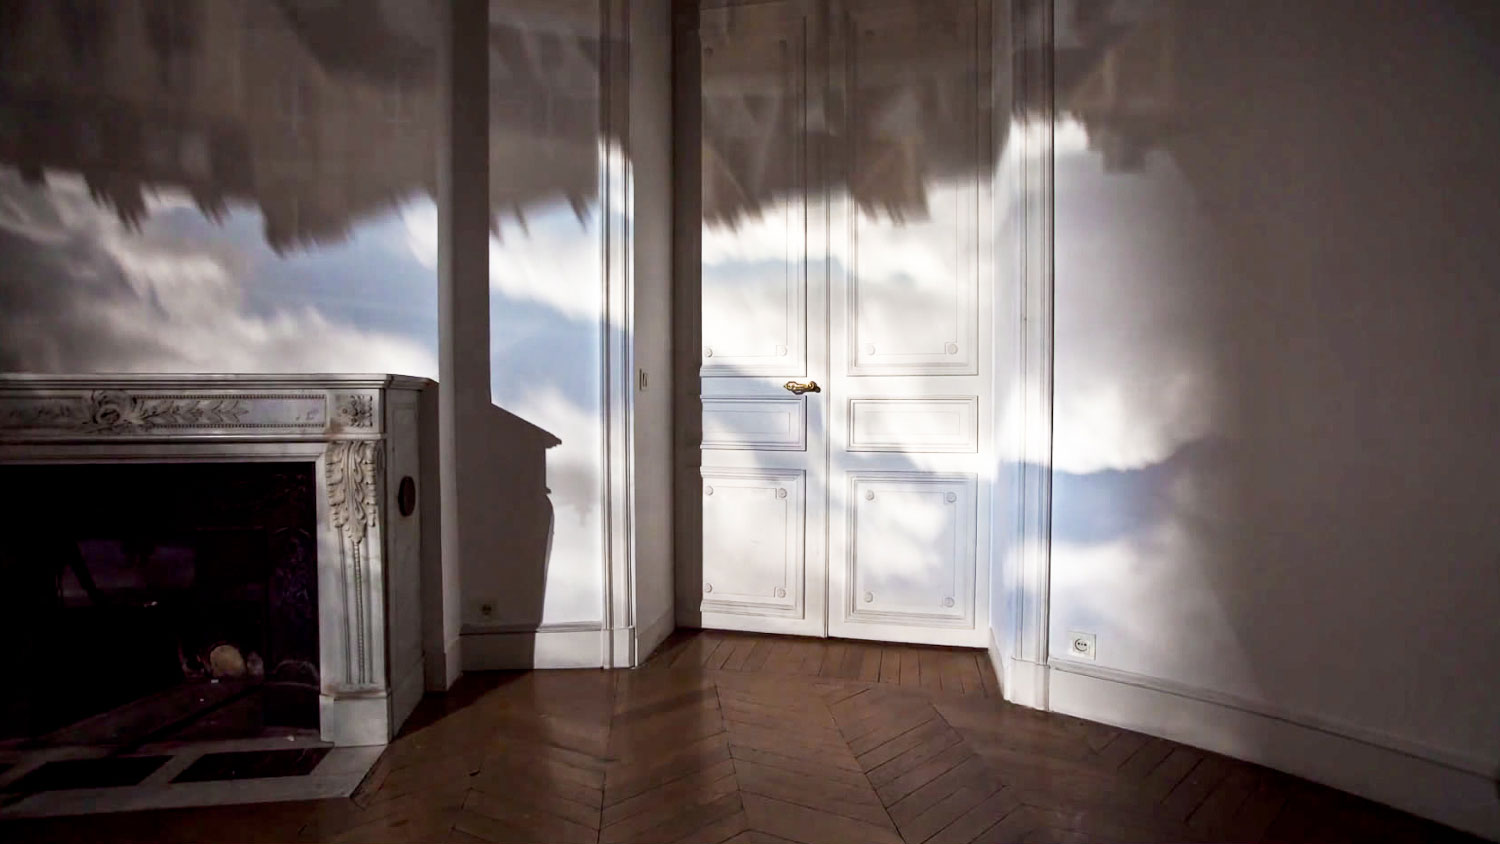 camera obscura project by romain alary and antoine levi